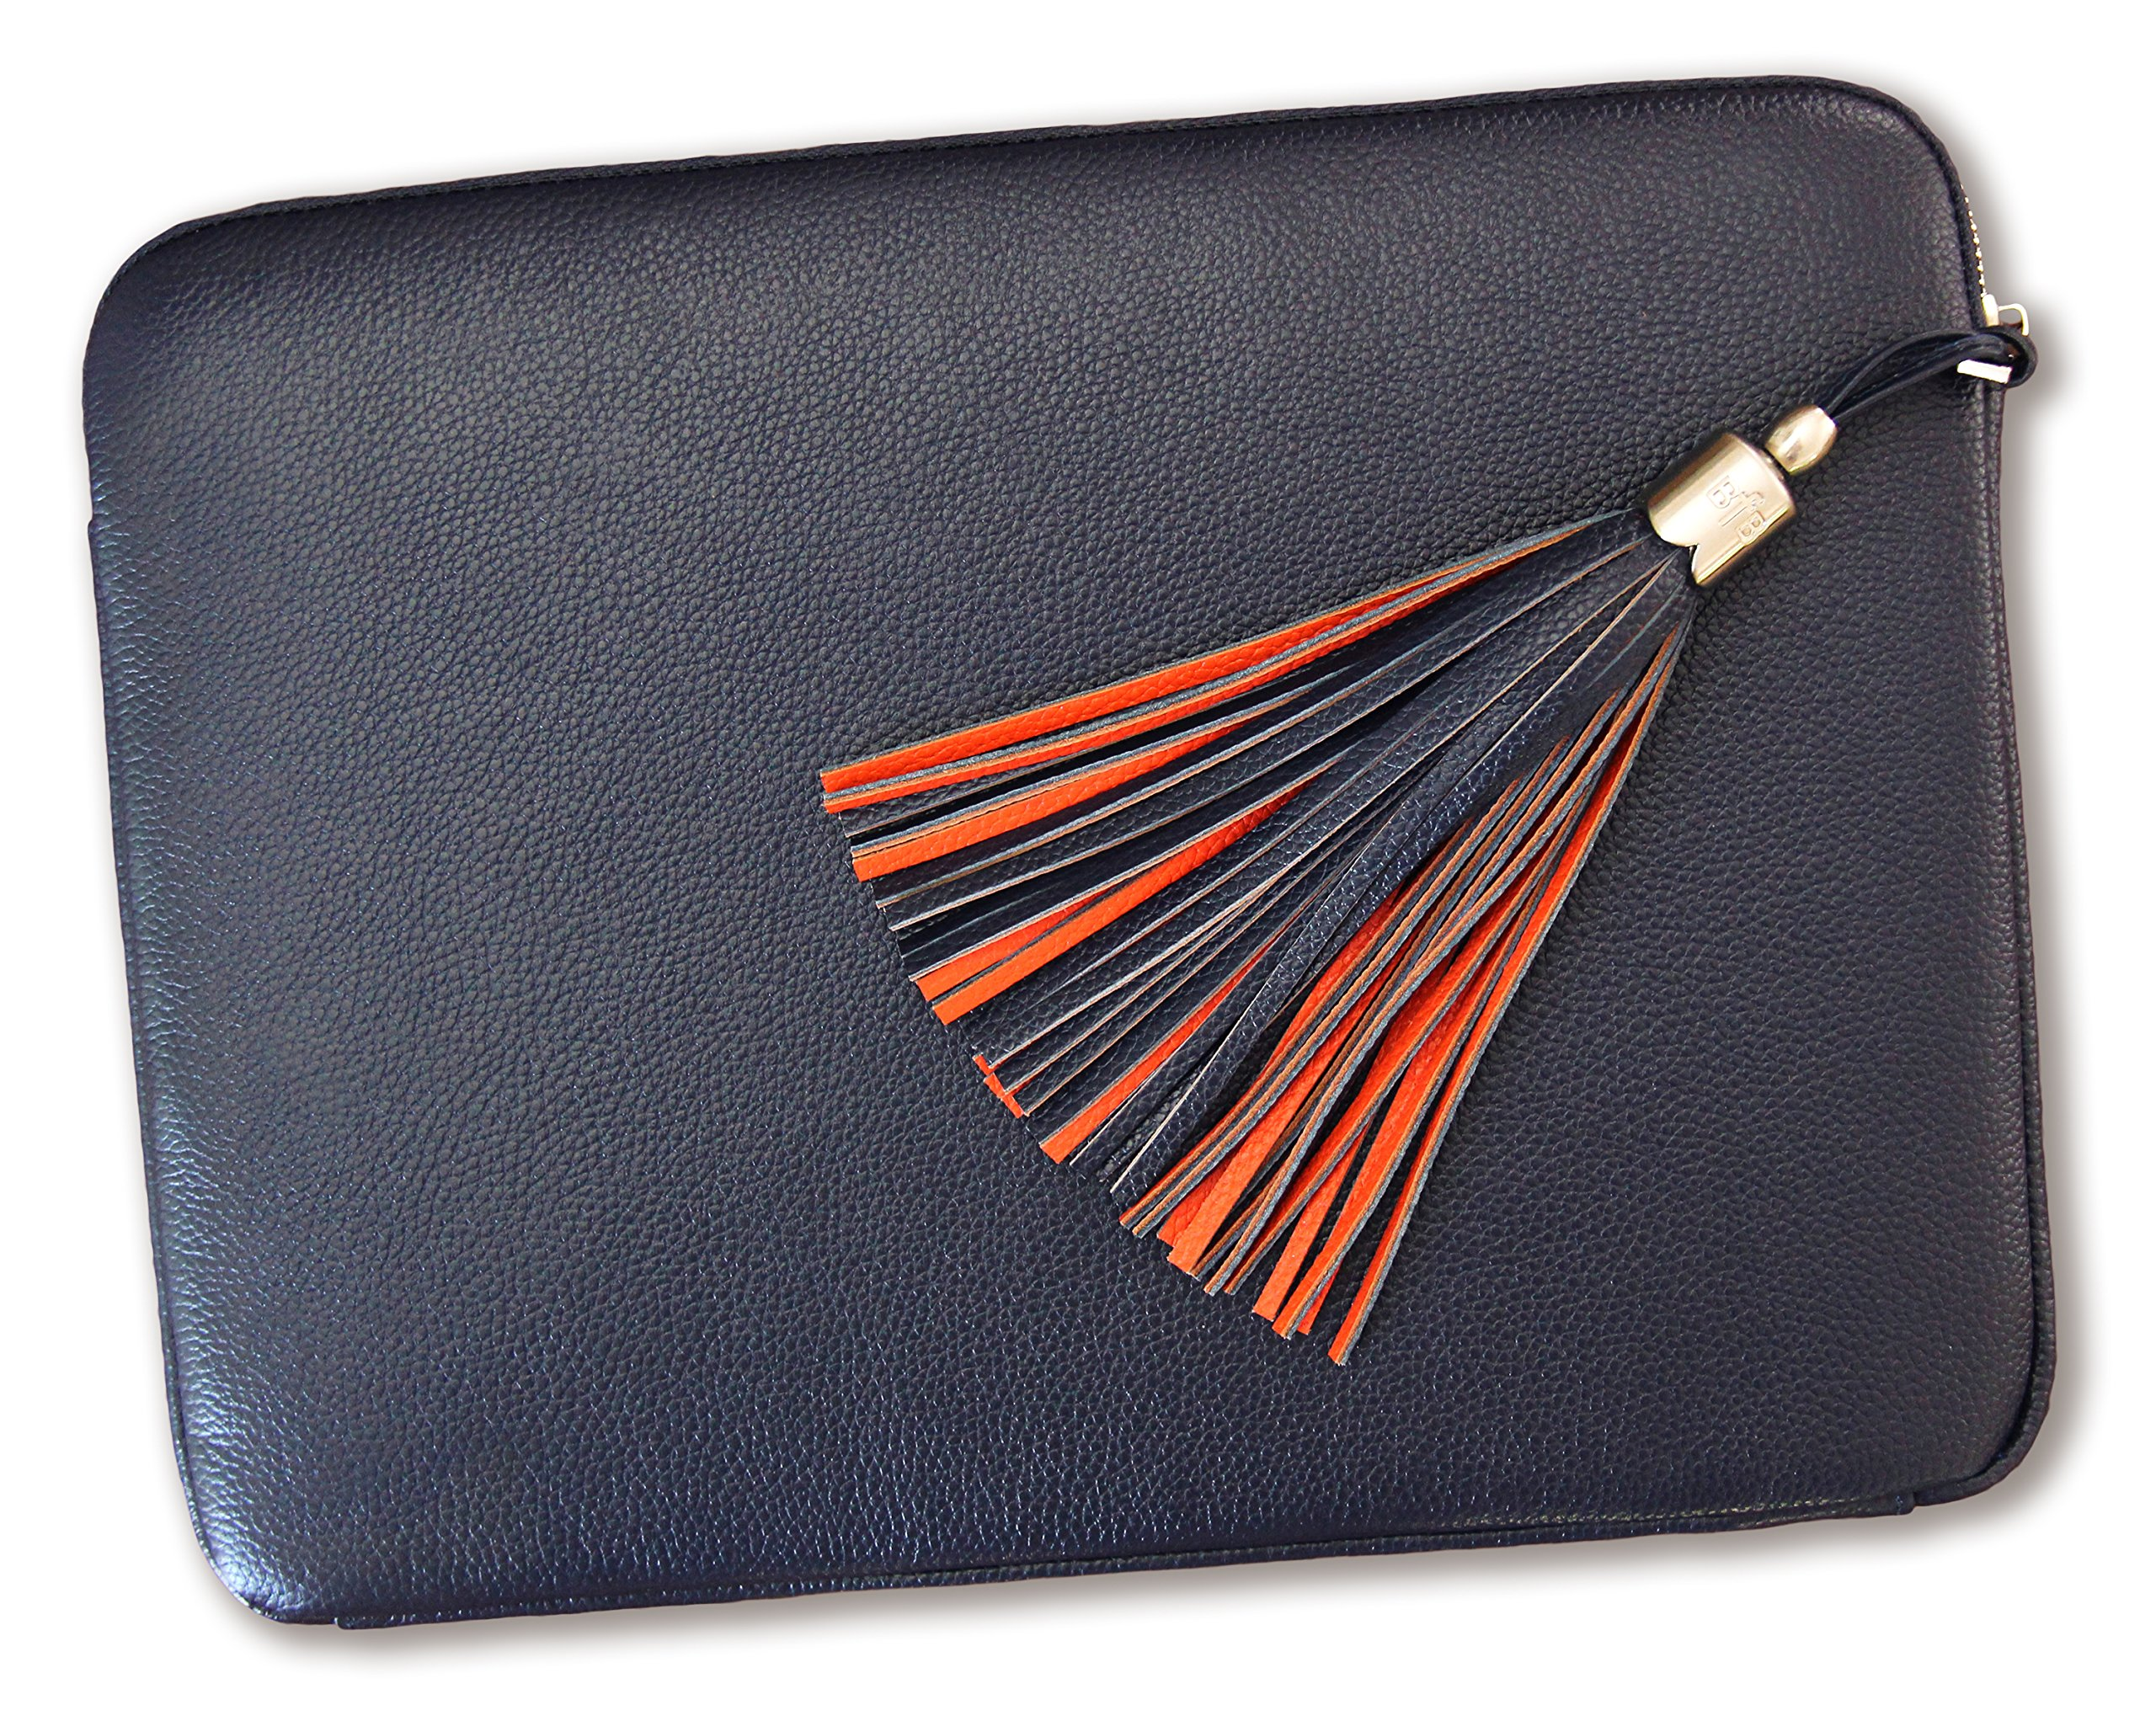 BFB Laptop Sleeve Case Cover – Genuine Leather Compatible 13 inch MacBook Pro or Air – Handmade Beautiful and Practical – Designer Quality That Lasts – Navy by My Best Friend is a Bag (Image #1)